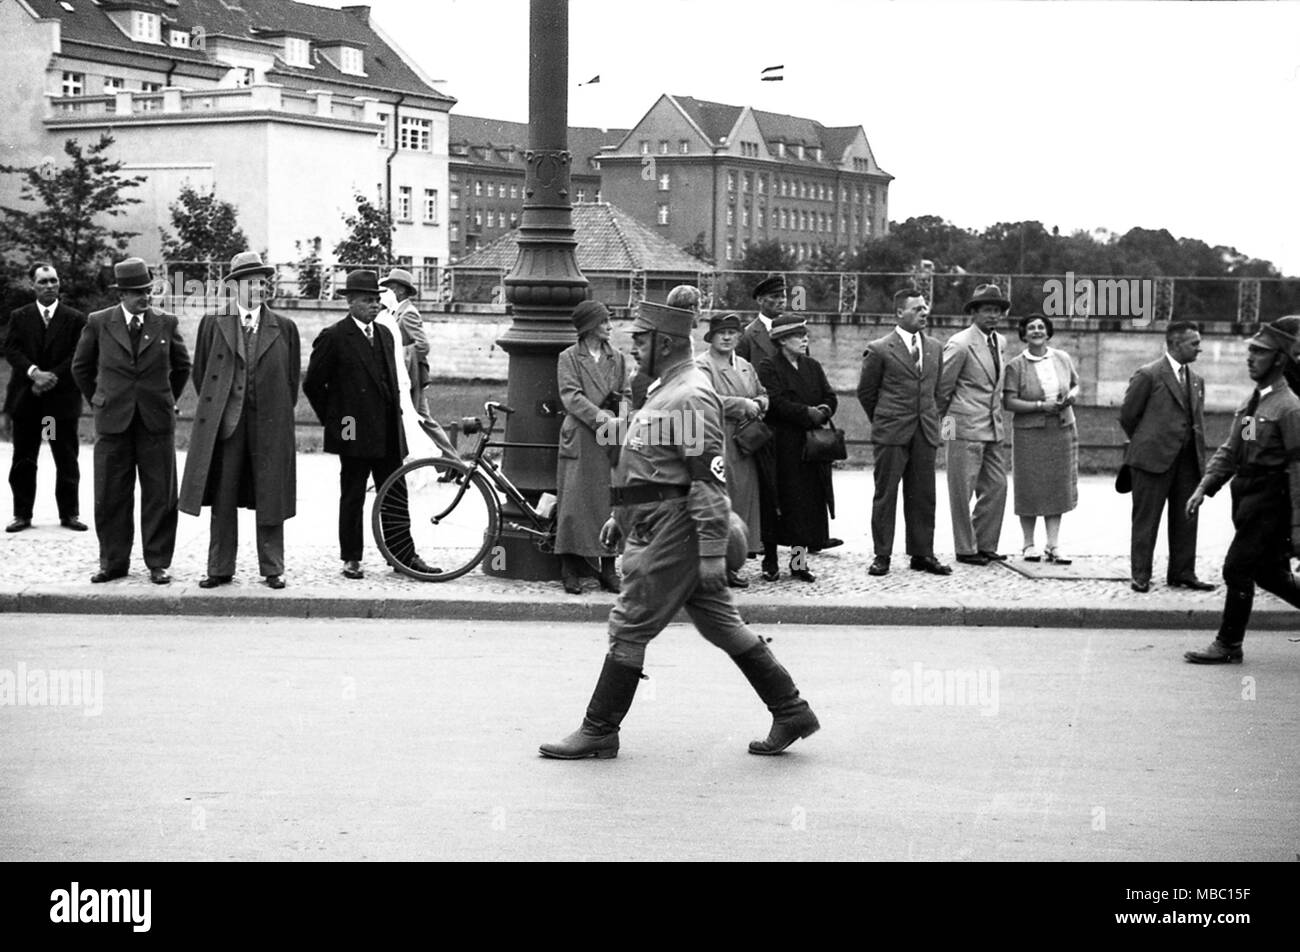 Sturmabteilung also called stormtoopers and Brownshirts carrying Swastika Flags in 1934 as they parade through Konigsberg in Germany. Konigsberg became Russian territory after the second world war and was renamed Kaliningrad. Deutschland 1930s Stock Photo